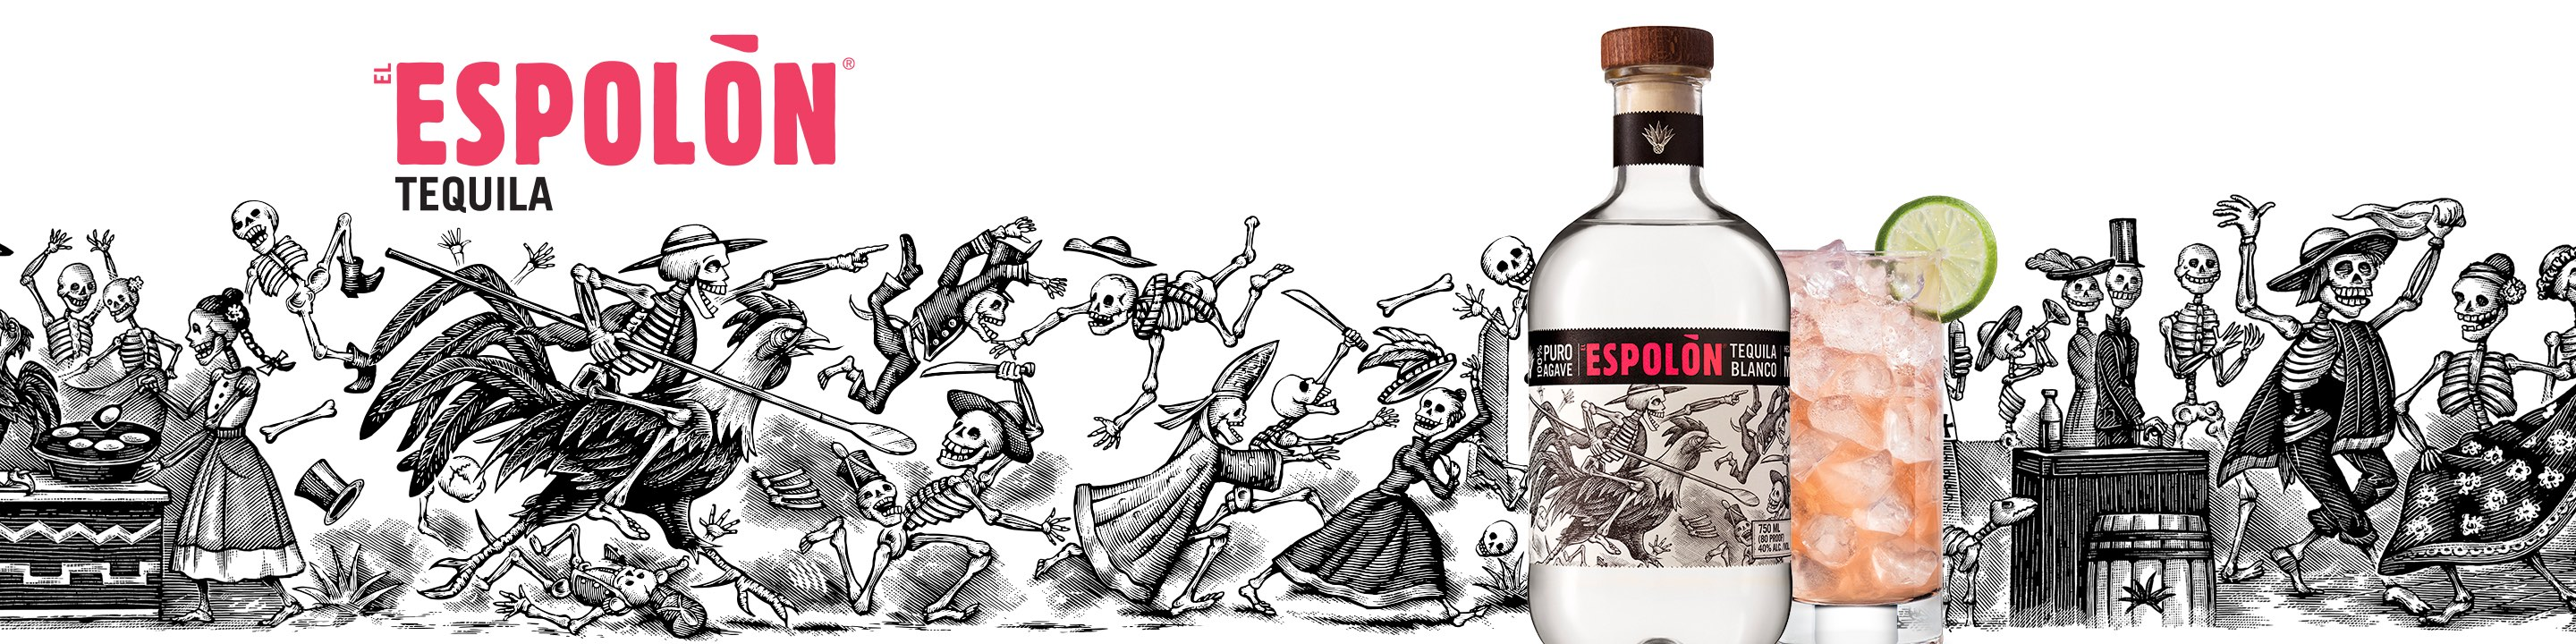 Made with hand-harvested 100% blue weber agave and distilled in the highlands of Jalisco, Mexico, Espolòn is the premium tequila that celebrates the storied culture of true Mexico through classic 19th century artistry and the iconic rooster, a symbol of national pride. The labels, unique illustrations inspired by Mexican artistry, infuse the characters of Guadalupe, Rosarita and Ramon the Rooster into journeys capturing real moments in Mexican history. Espolòn Tequila is produced in three marques, Blanco, Reposado and Anejo, and offers a limited time release, extra Anejo. Buy Espolòn Tequila online now from nearby liquor stores via Minibar Delivery.